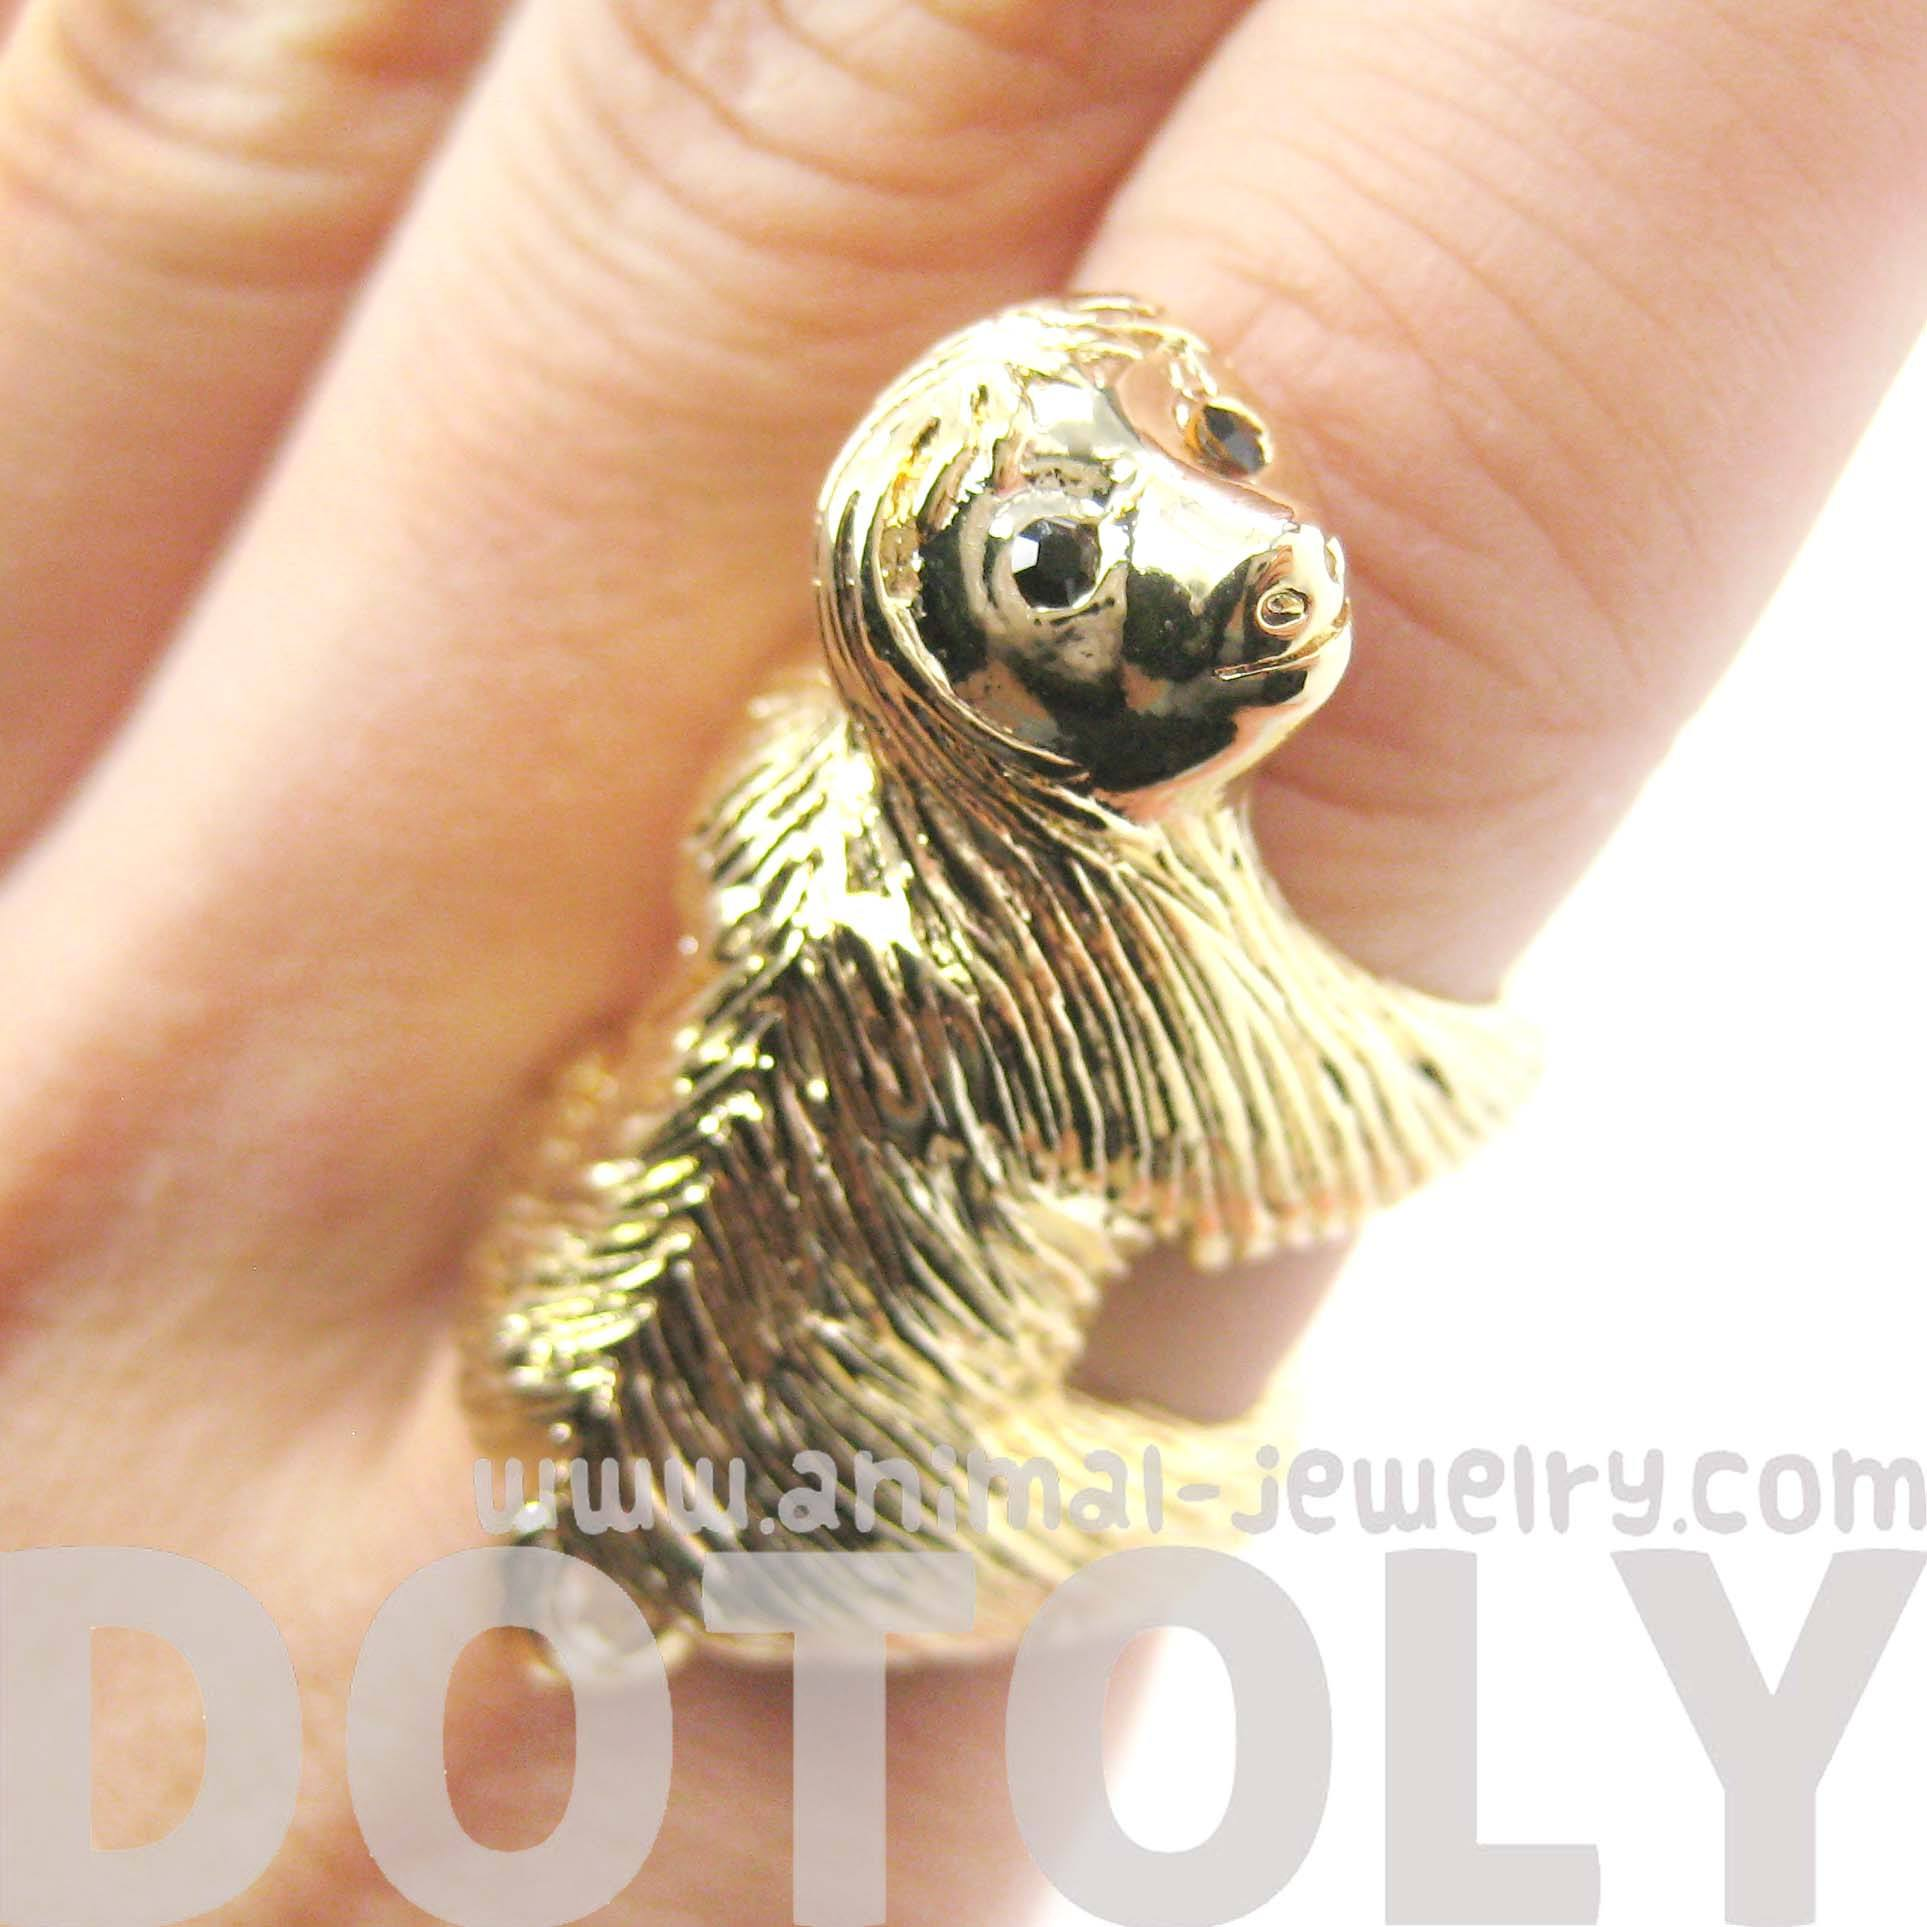 realistic-three-toed-sloth-shaped-animal-wrap-ring-in-shiny-gold-us-sizes-4-to-9